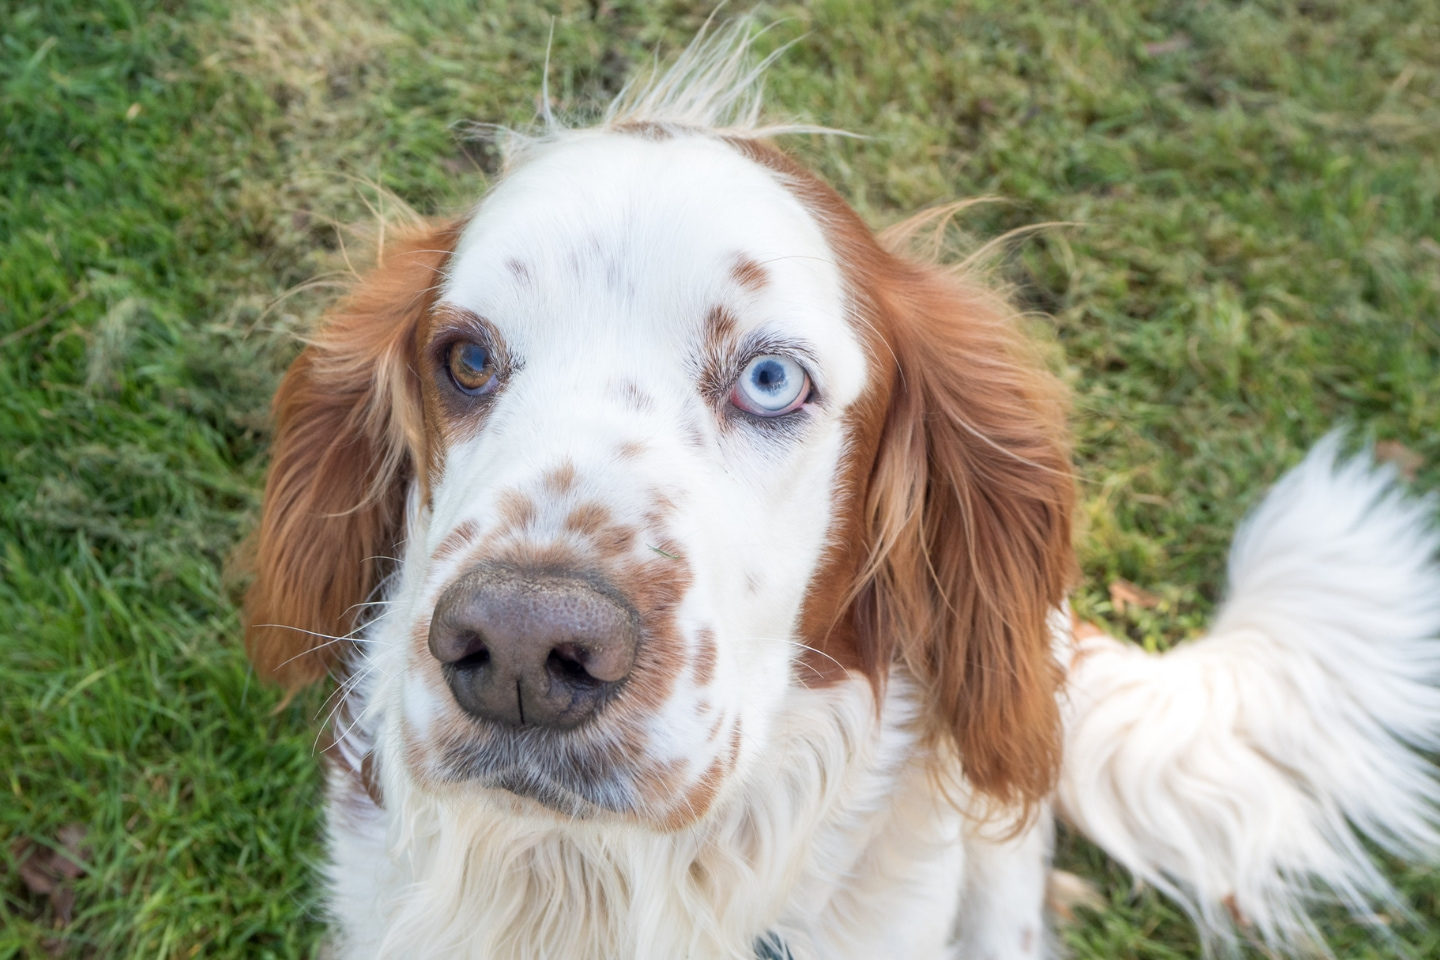 Falcon, Welsh Springer Spaniel, Springer Spaniel, James Wellbeloved, Dog, Dog Friendly